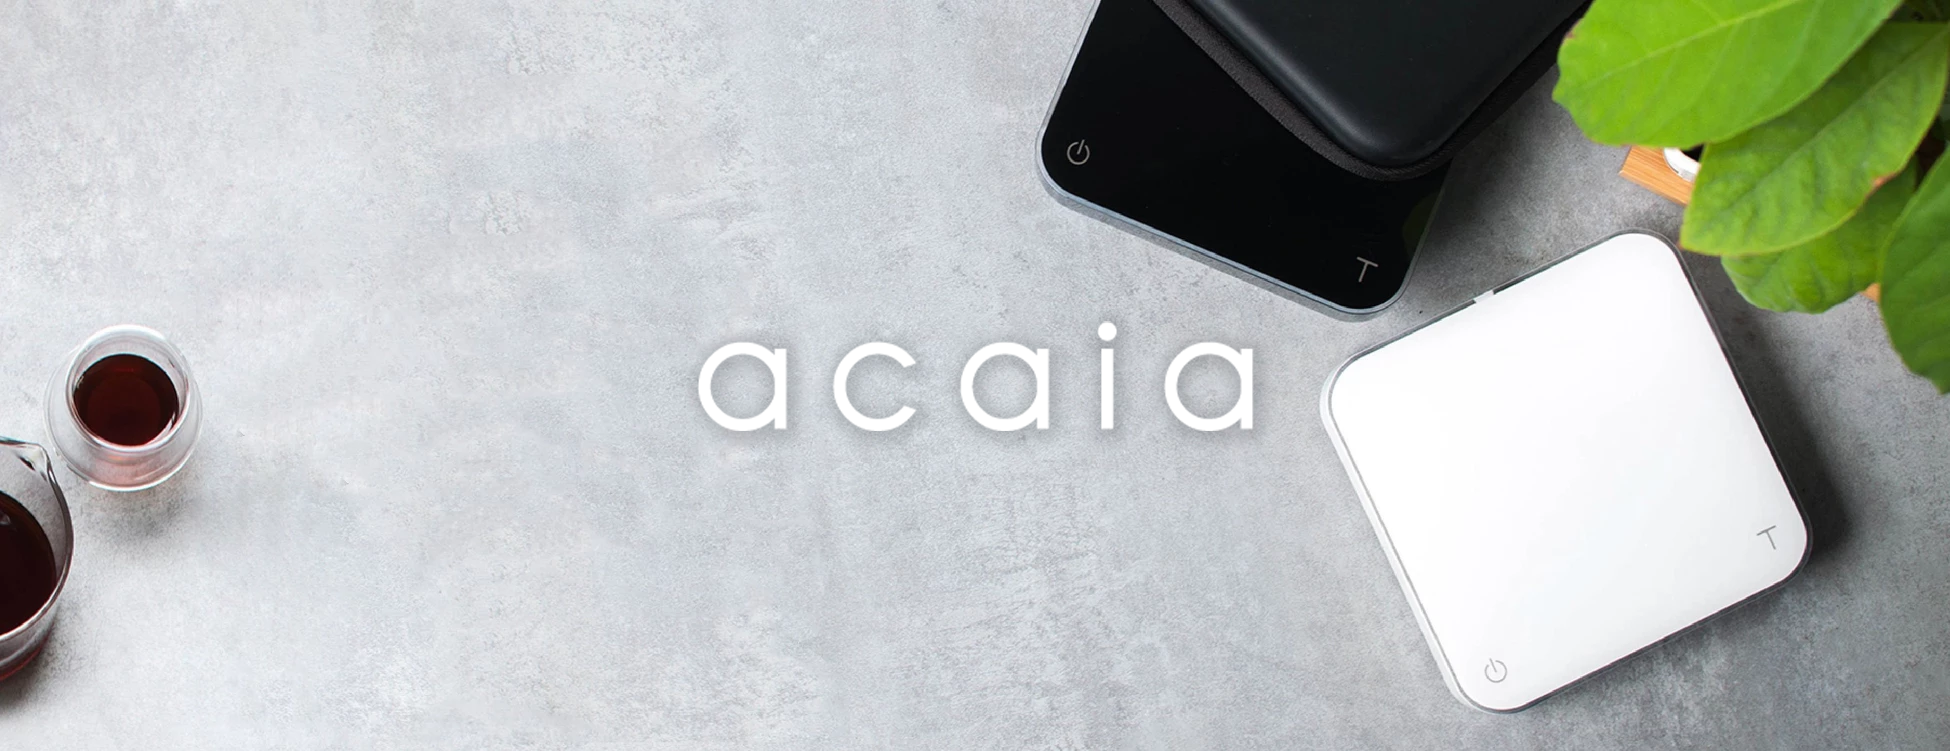 acaia-landing-page-banner.png